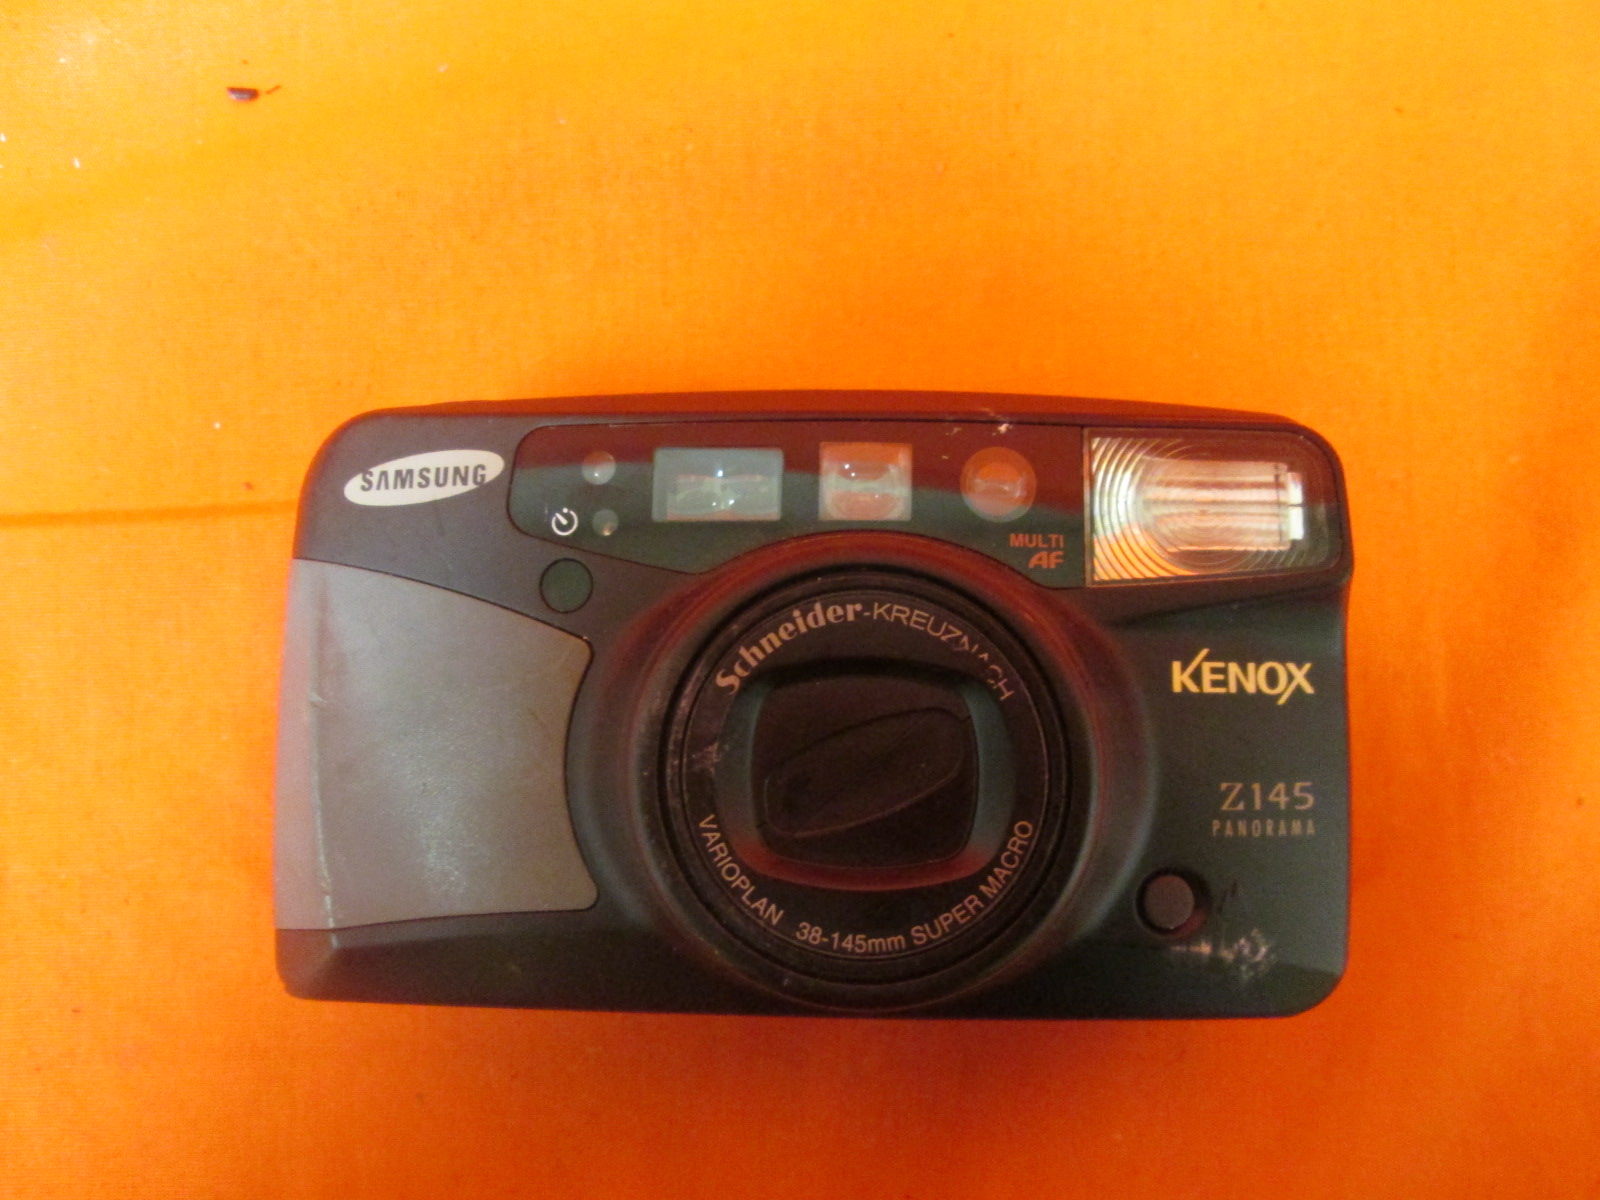 Samsung Kenox Z145 35MM Panorama Camera Incomplete